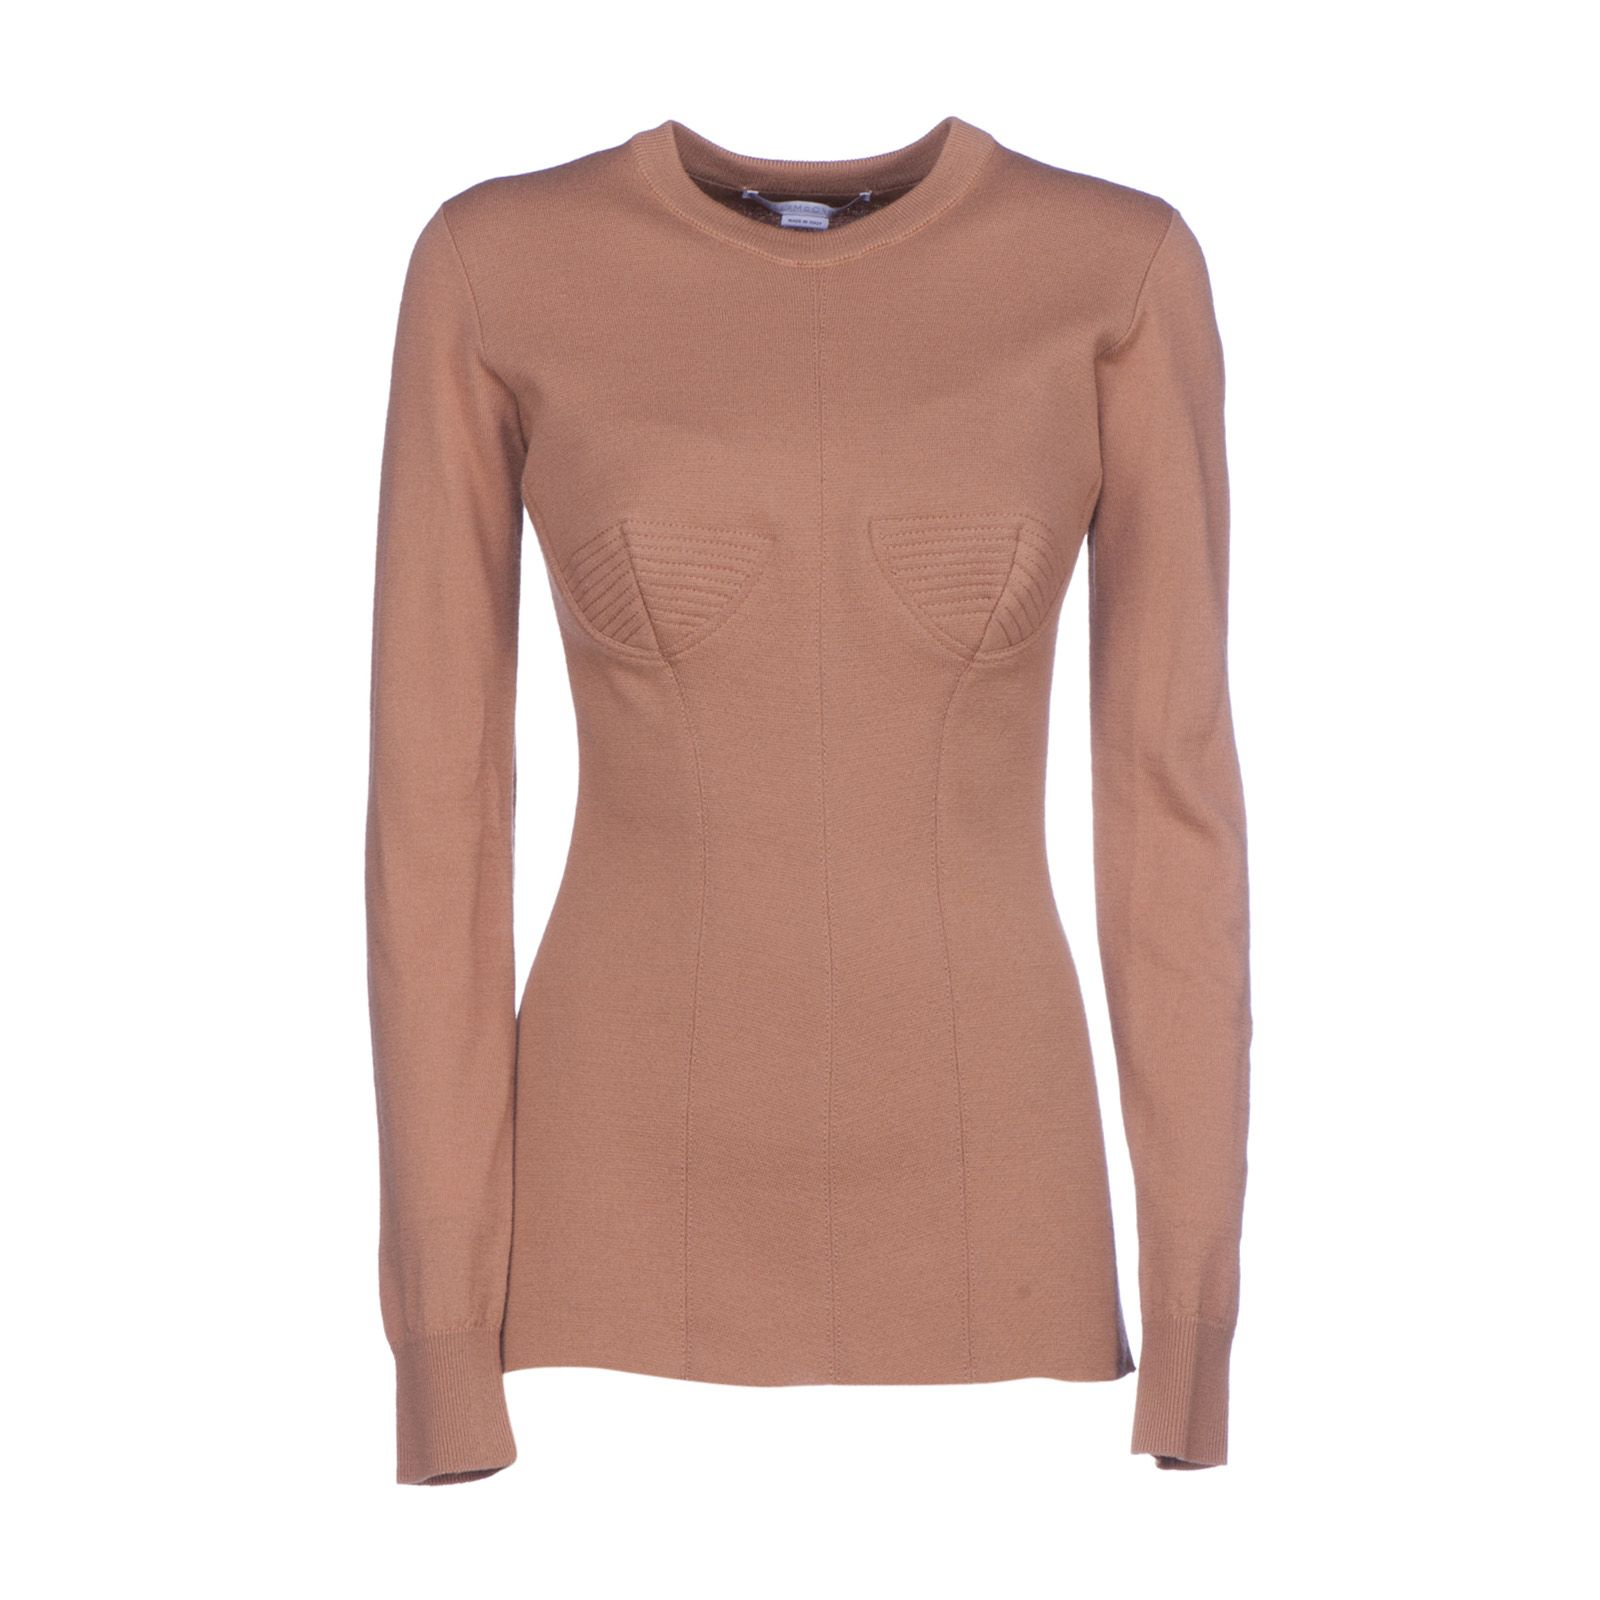 Stella Mccartney Crew Neck Sweater